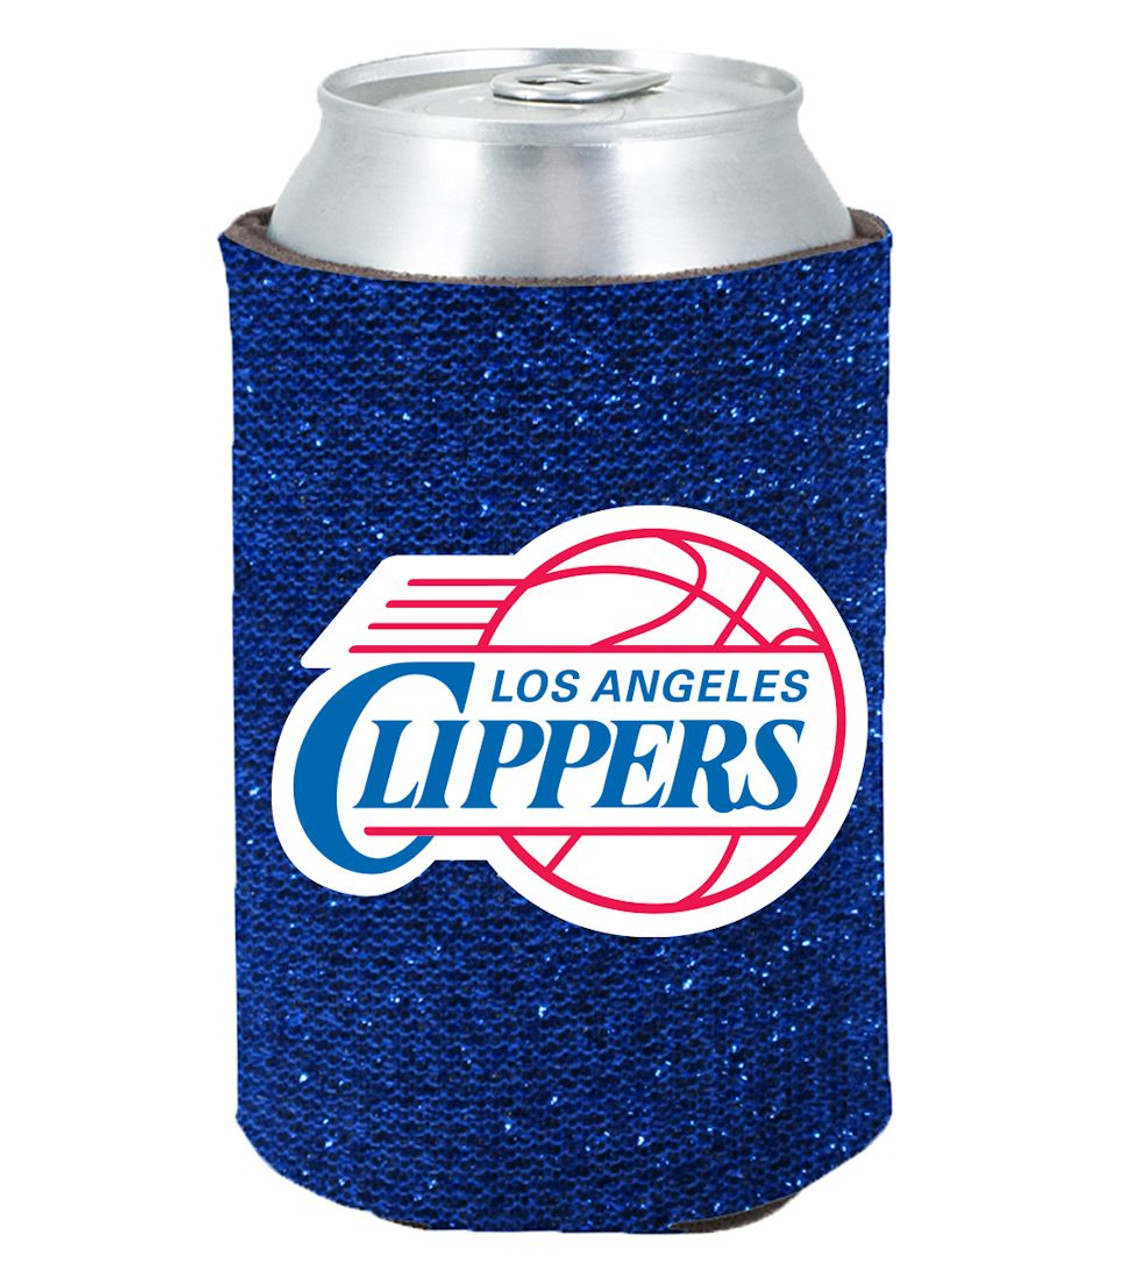 Los Angeles Clippers Kolder Kaddy Can Holder Glitter Blue Special Order